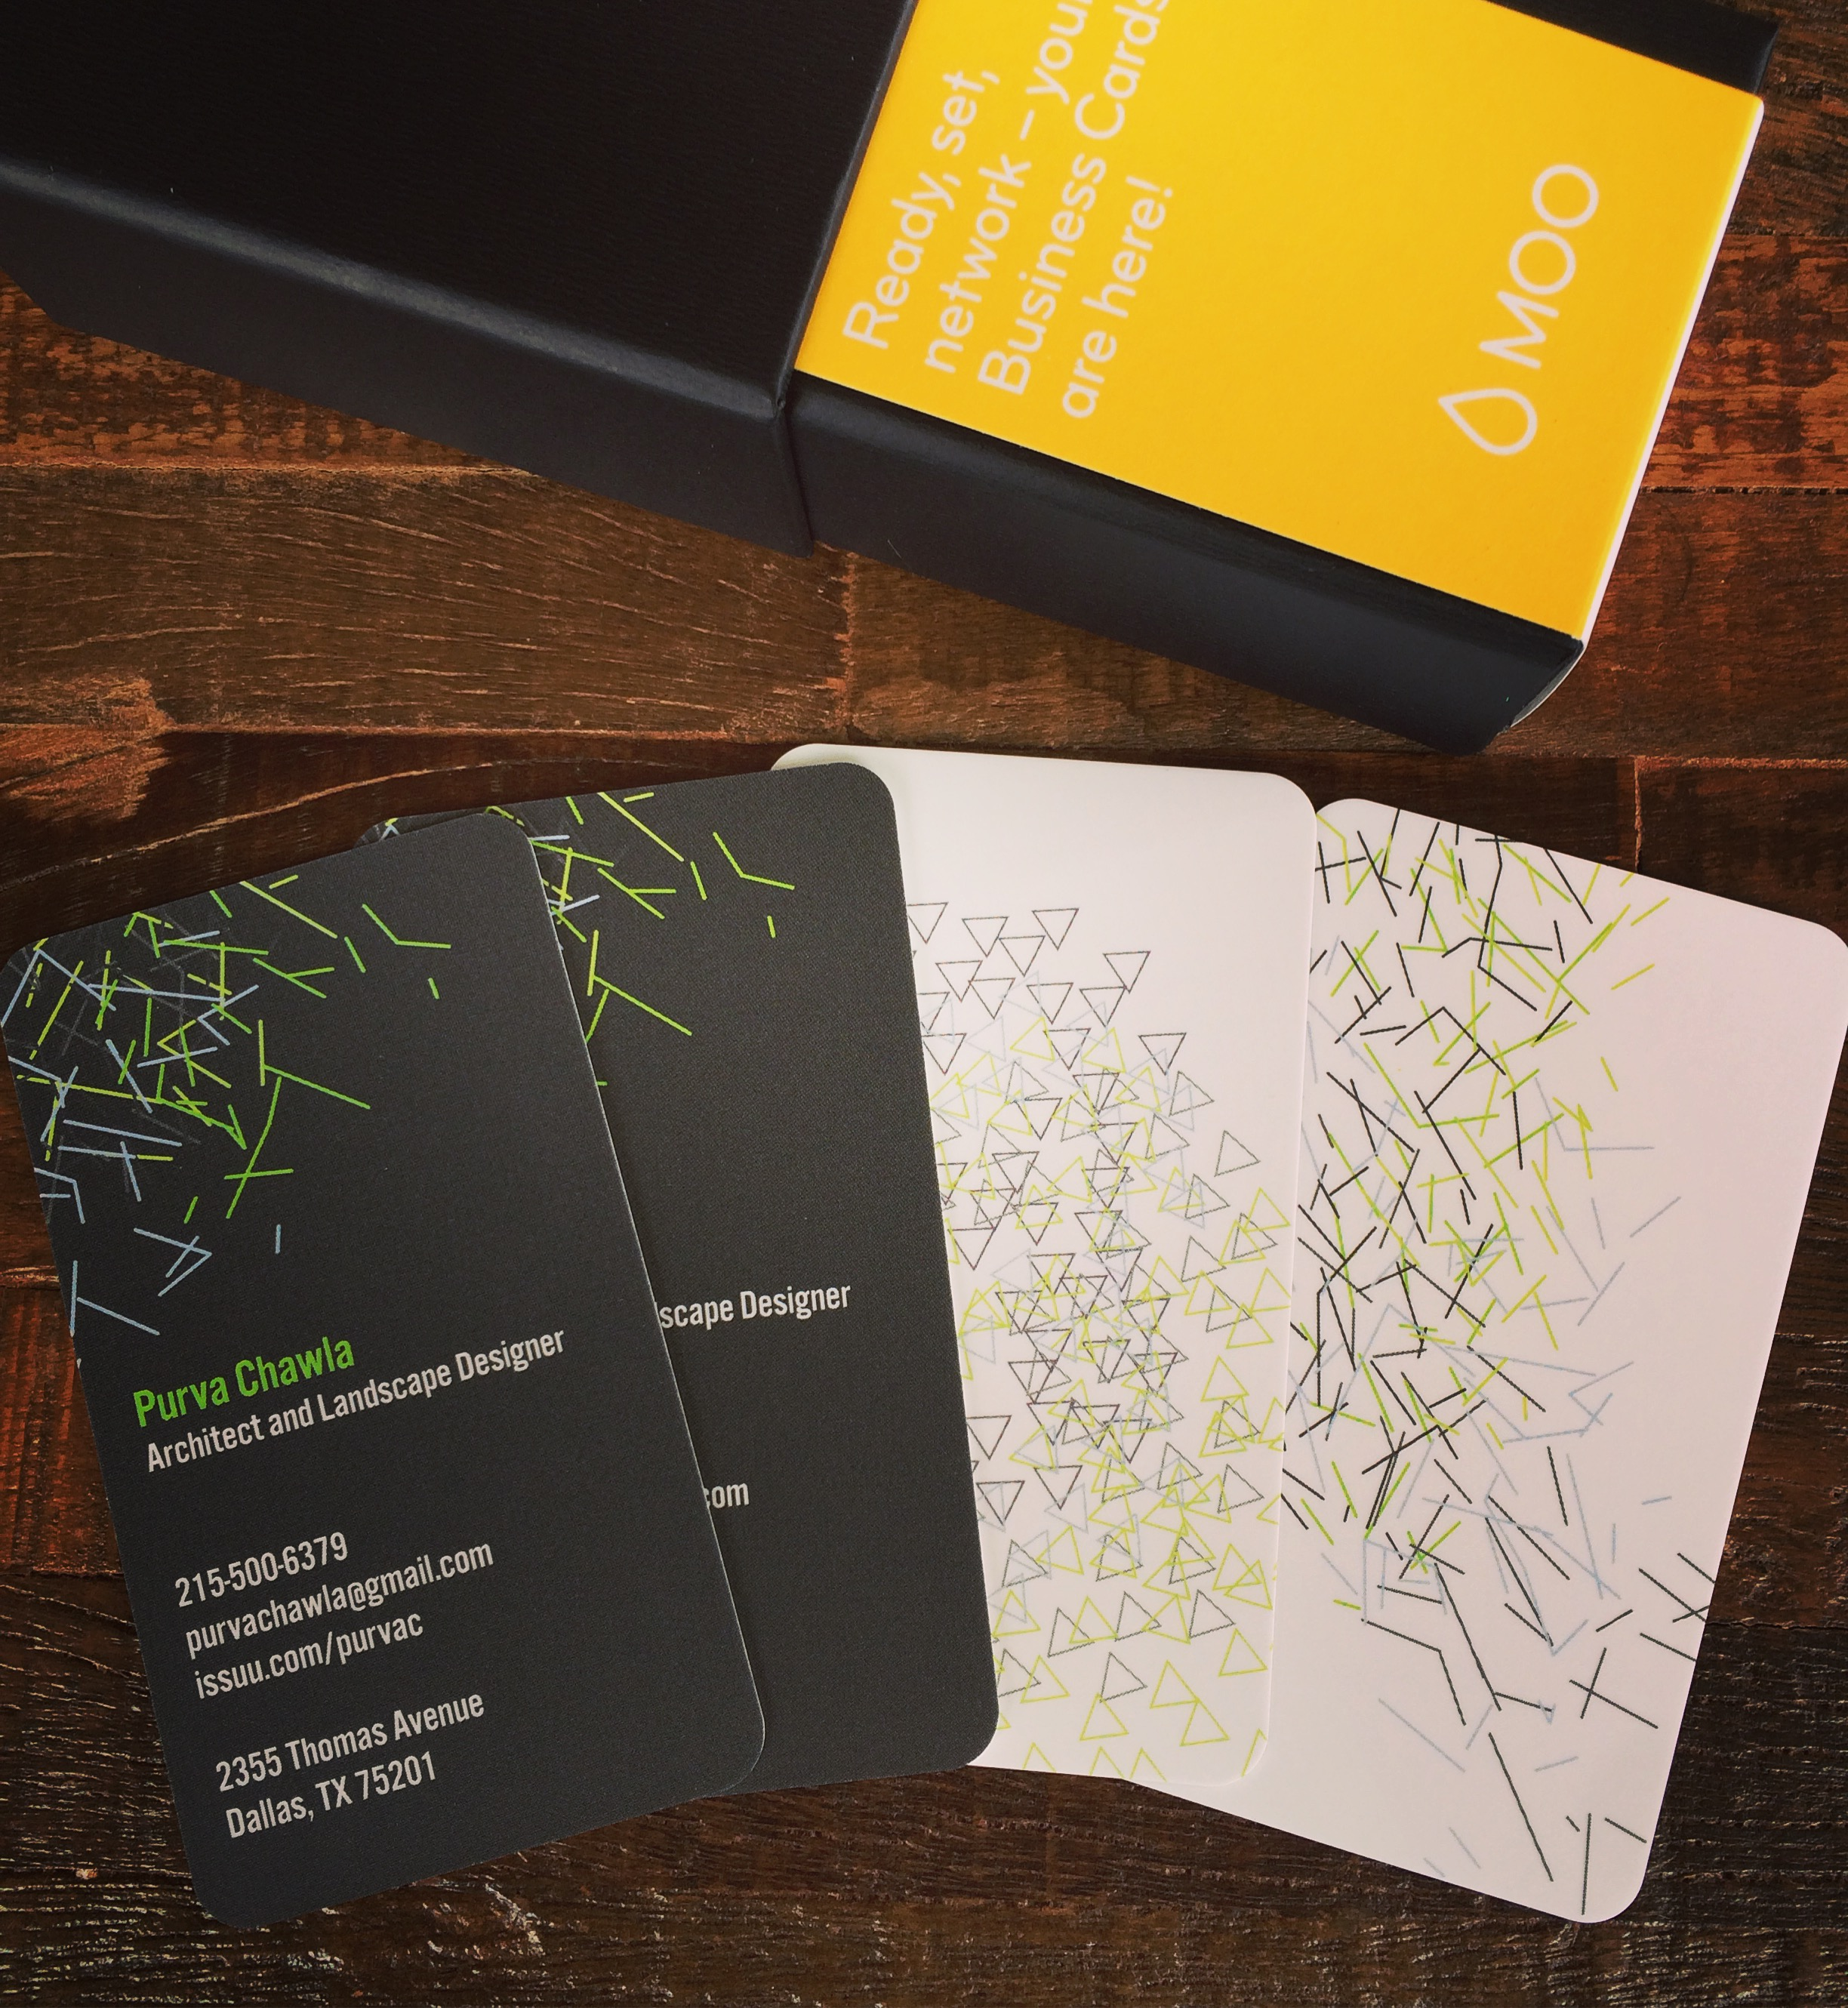 30 minute business cards, using MOO's templates and customization options.